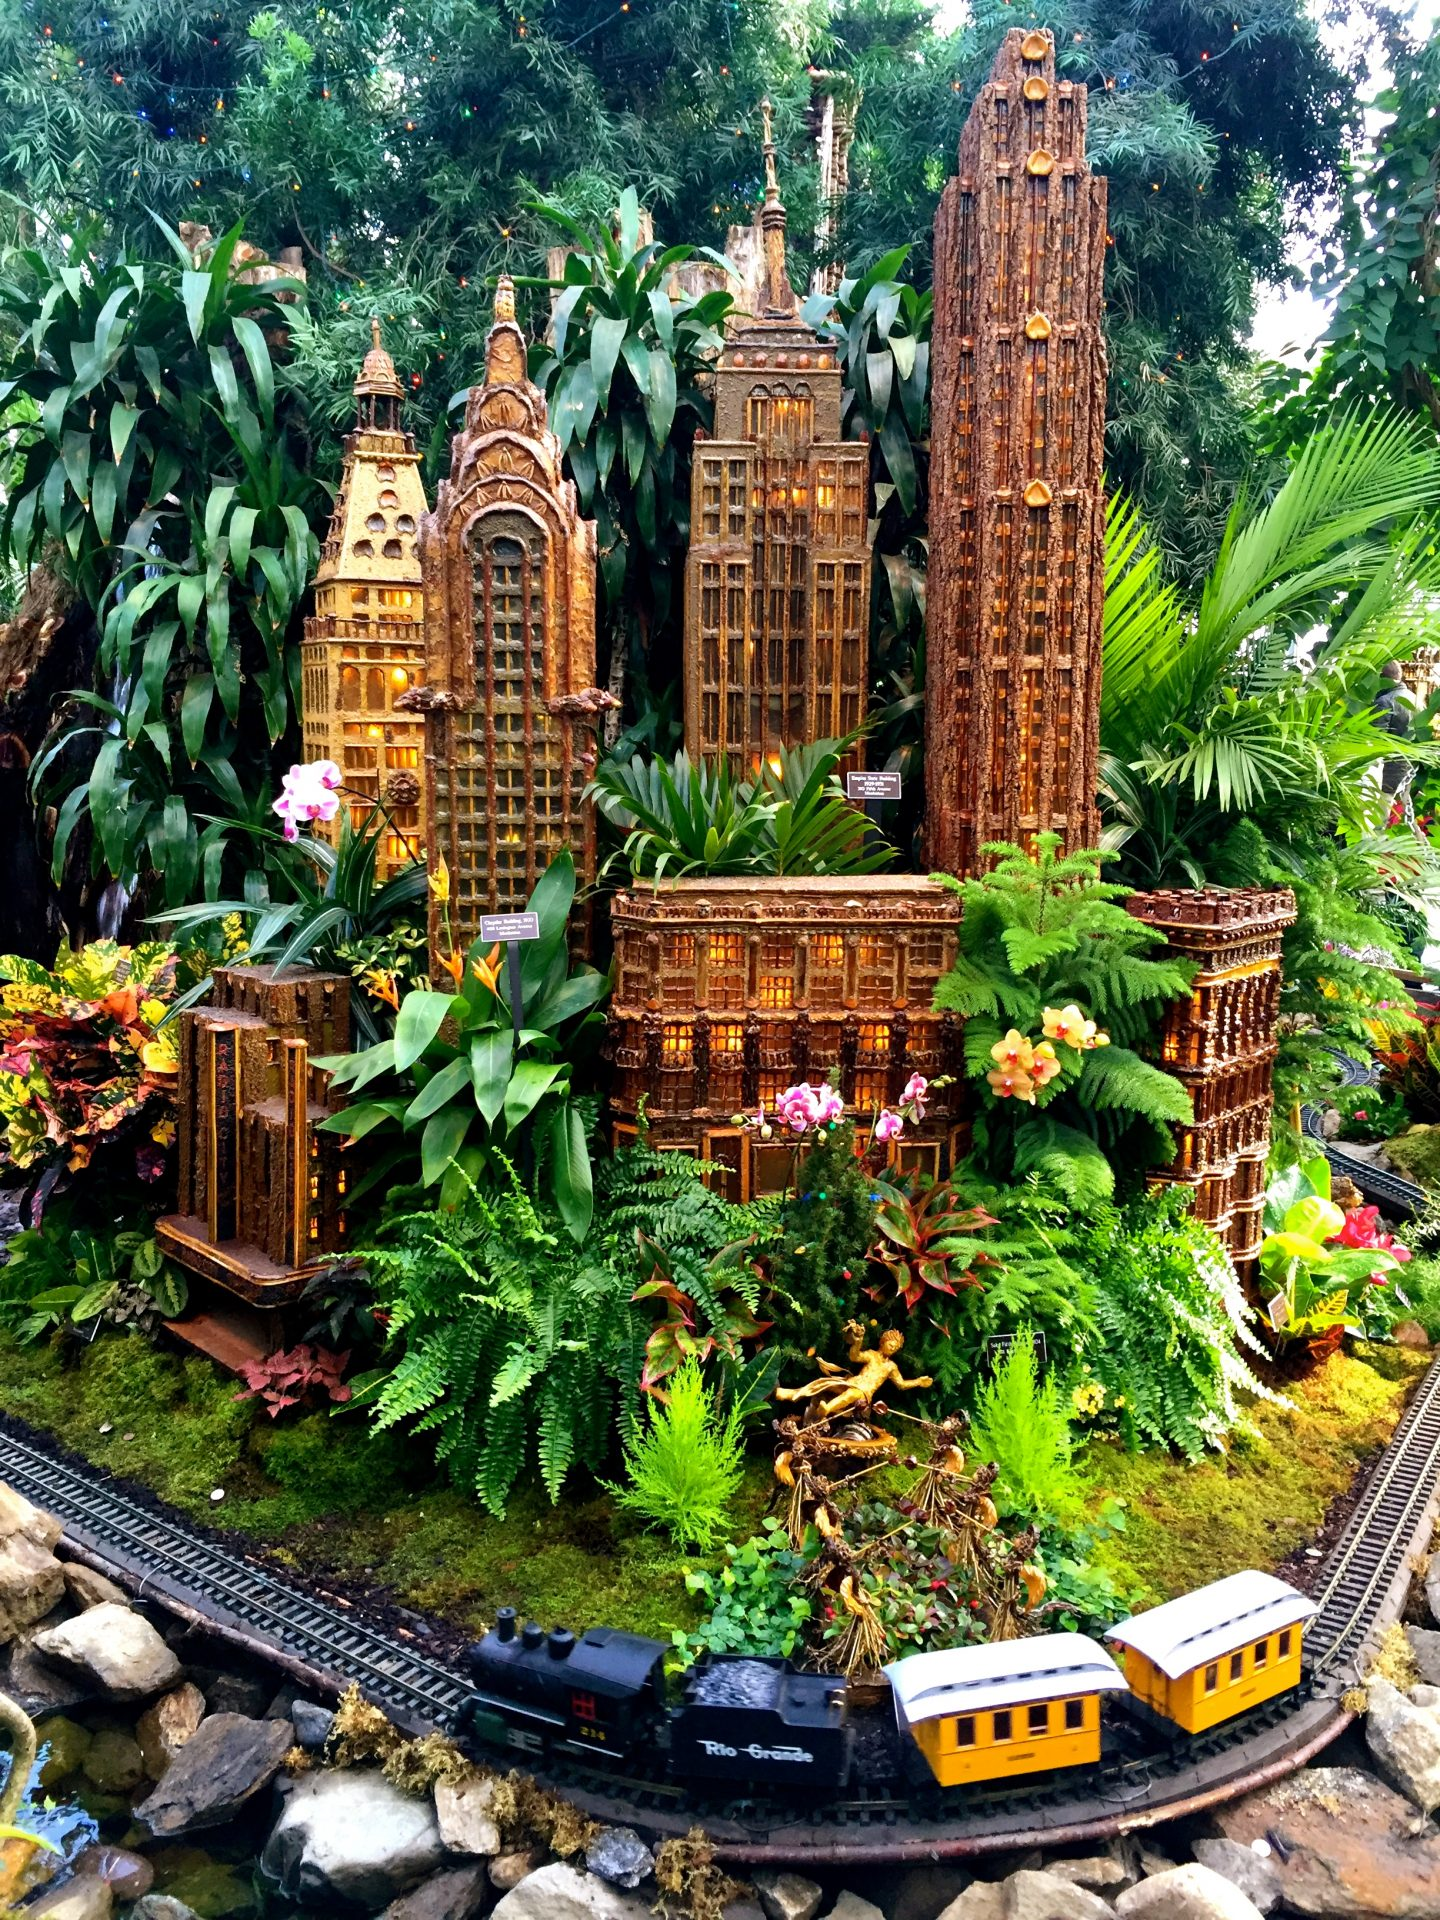 Guide To The Holiday Train Show At The New York Botanical Garden